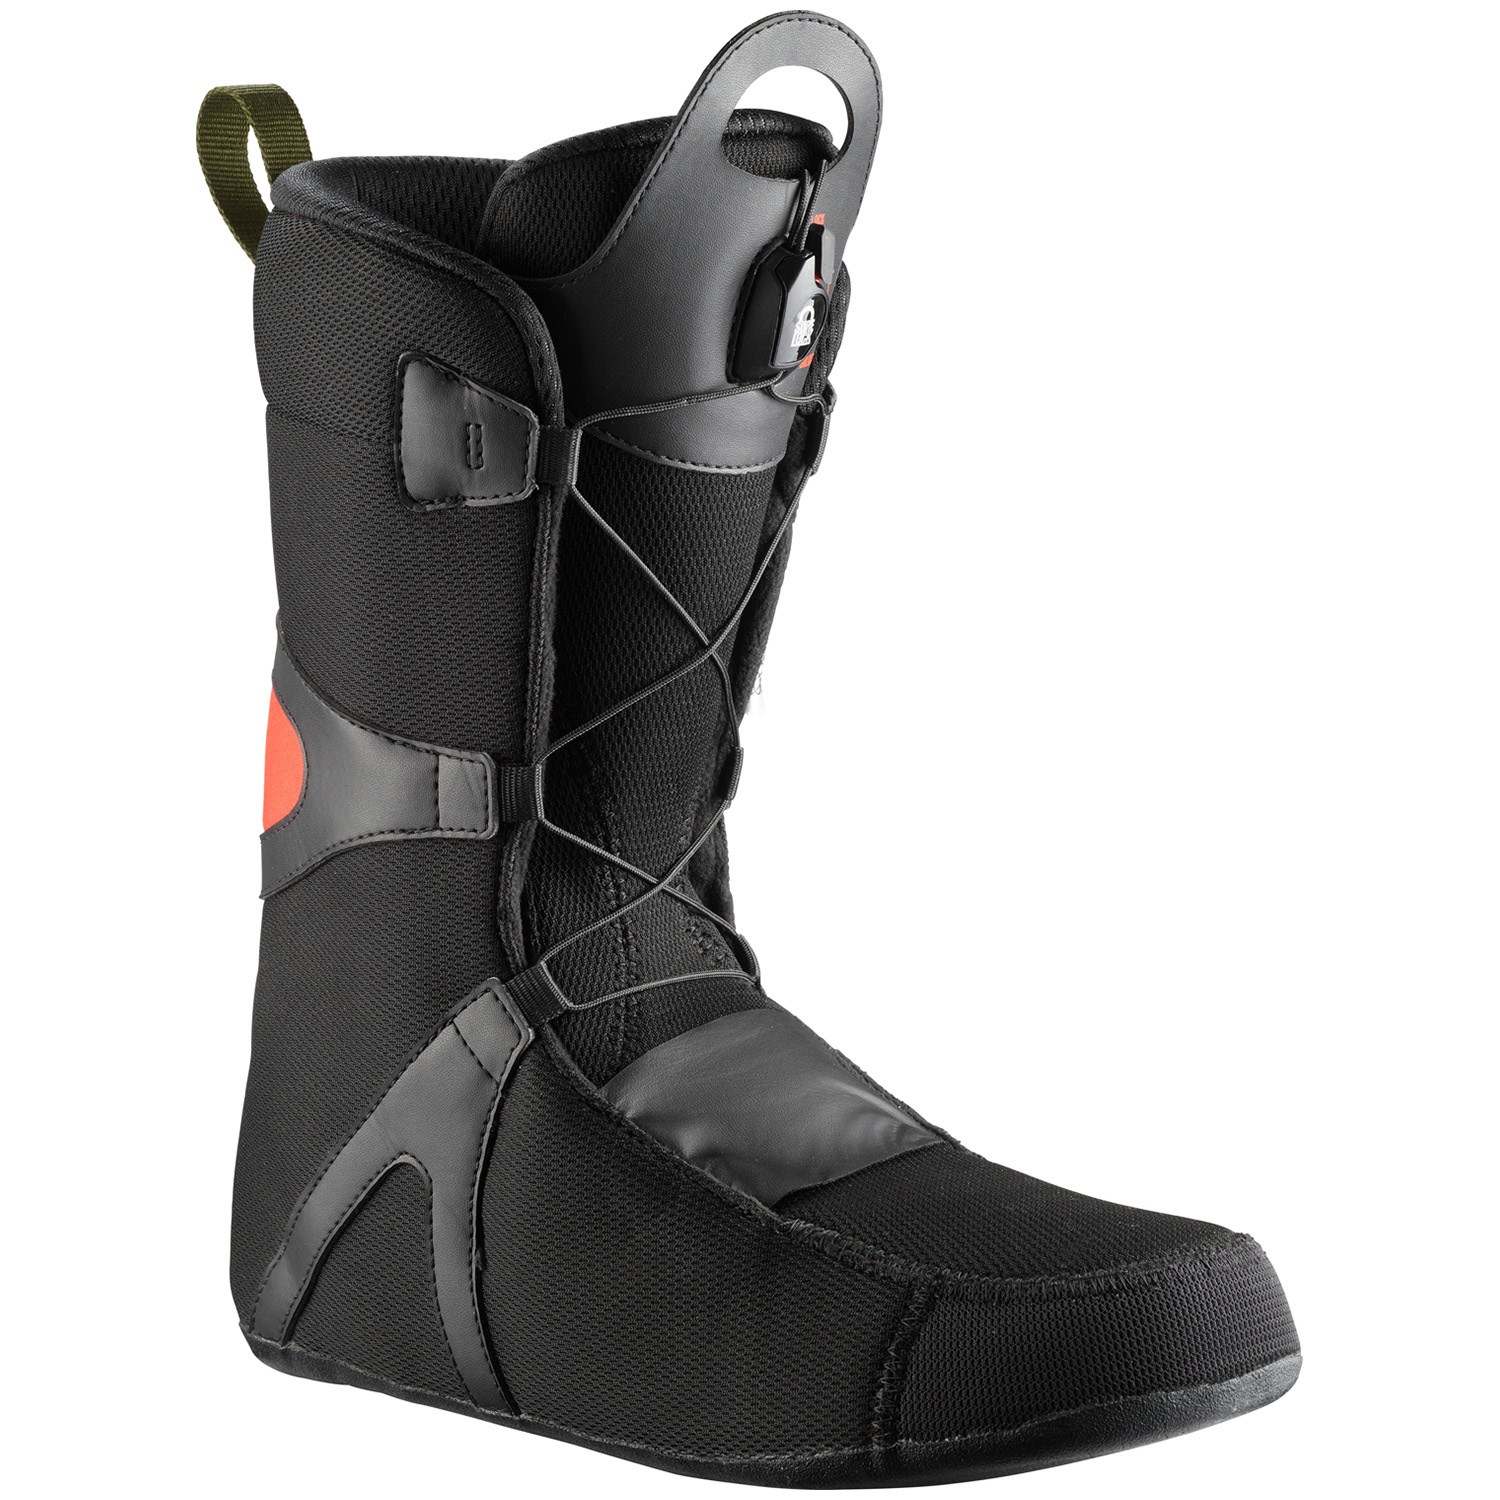 Low Profile Snowboard Boots - Best Picture Of Boot Imageco.Org bf7443ea1